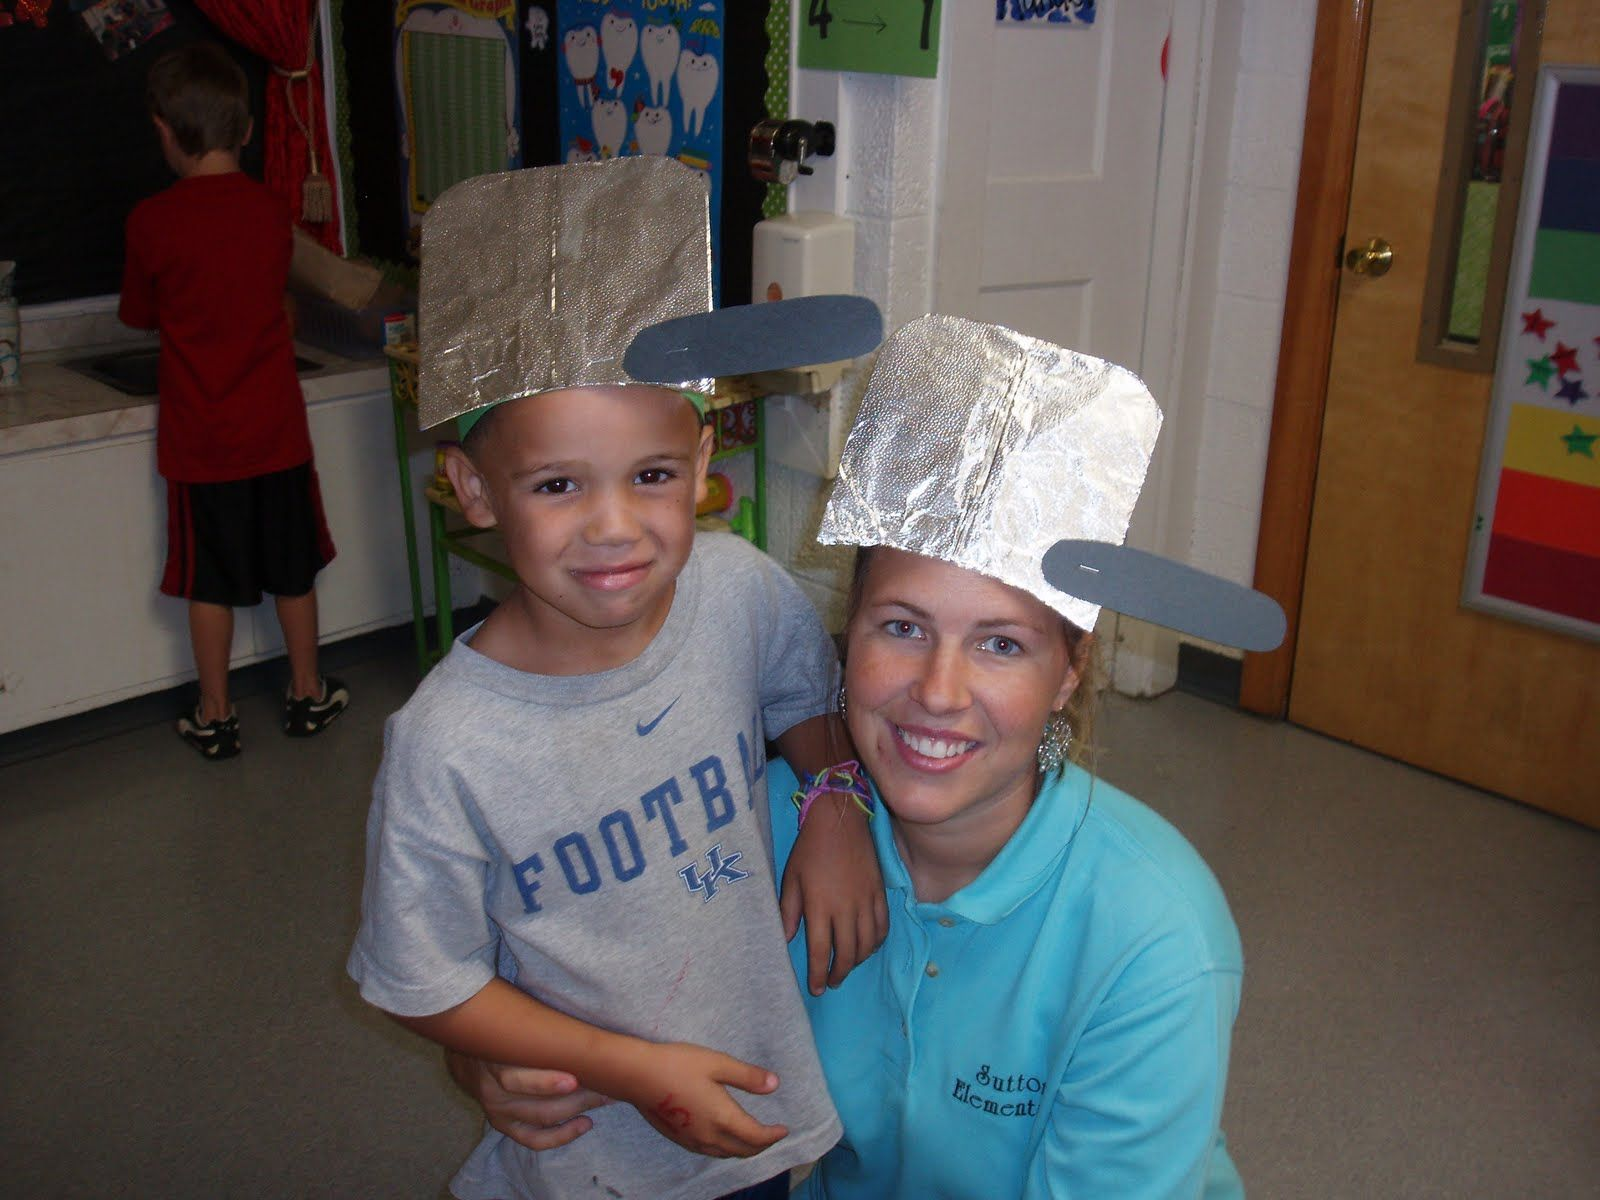 Johnny Appleseed Pot Heads Lol